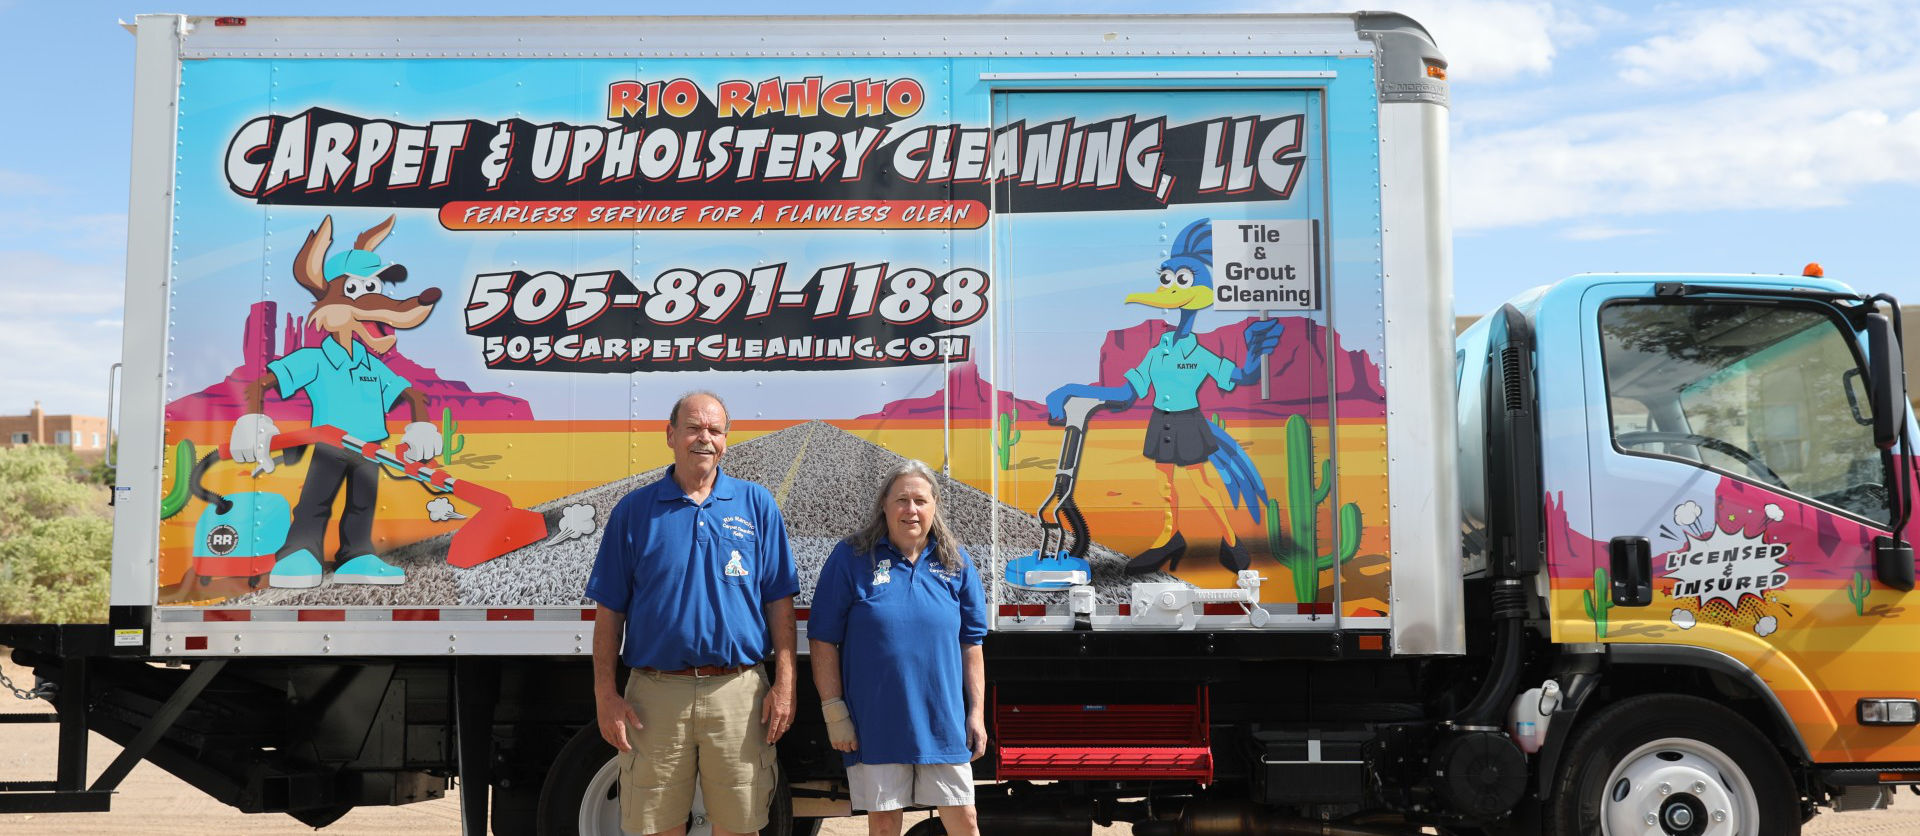 Carpet Cleaning Tile Cleaning More Serving Rio Rancho